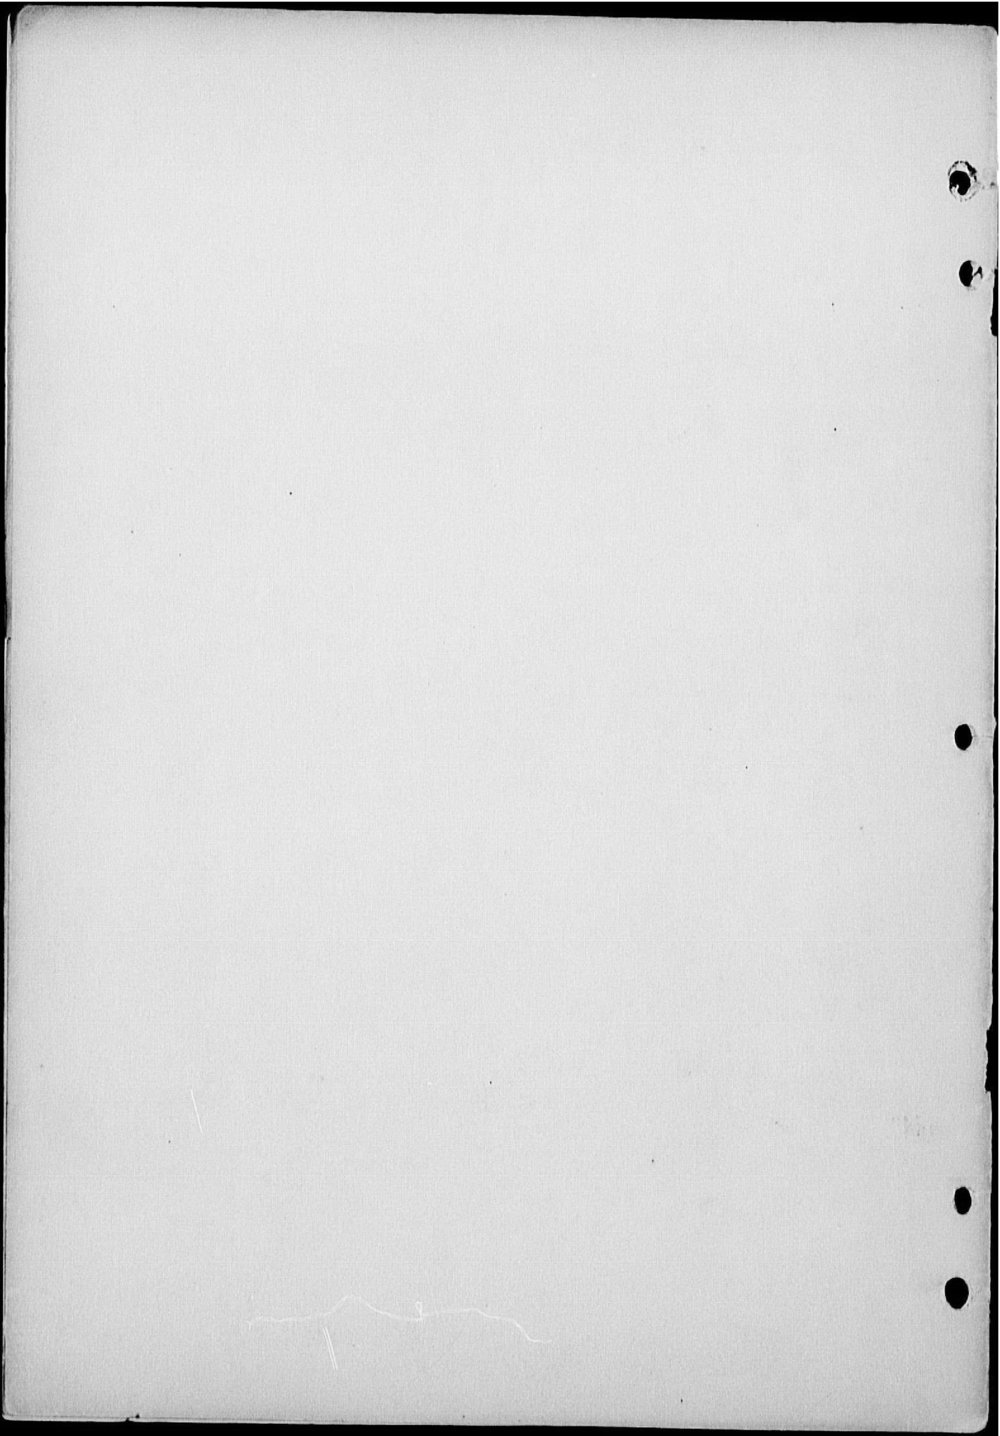 The Kansas Star, volume 52, number 1 - Blank